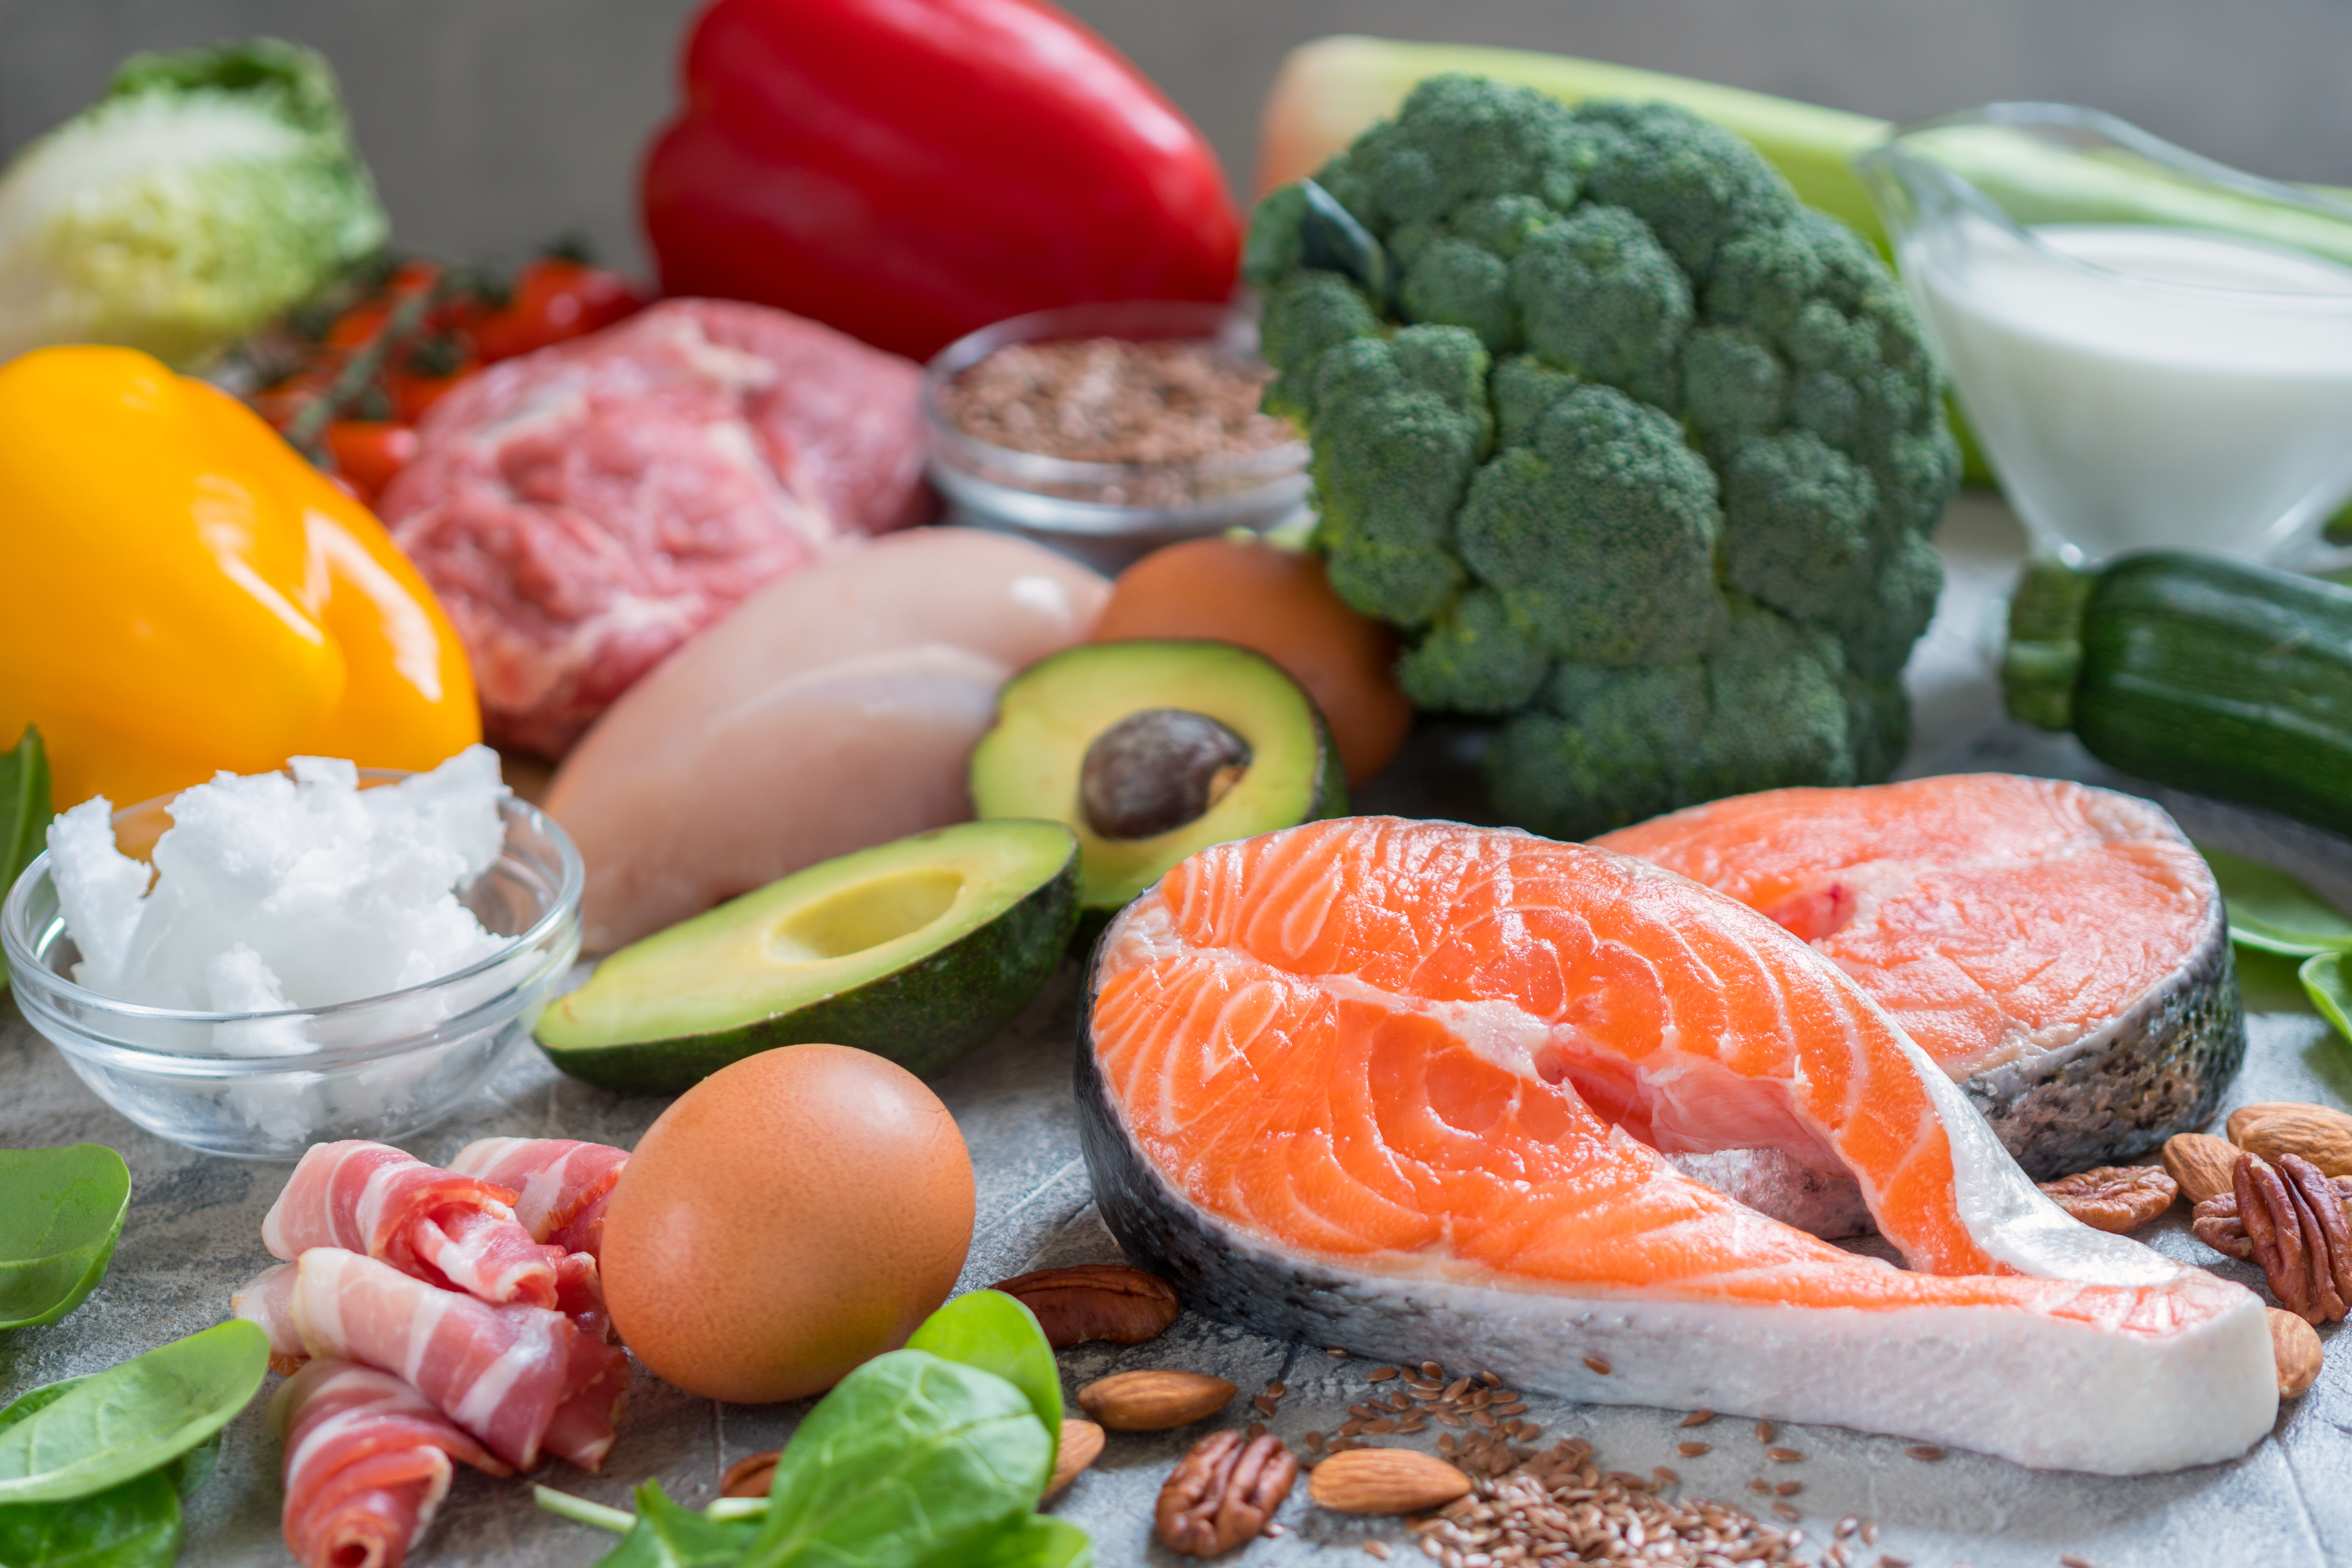 A low-fat diet may decrease postmenopausal breast cancer deaths